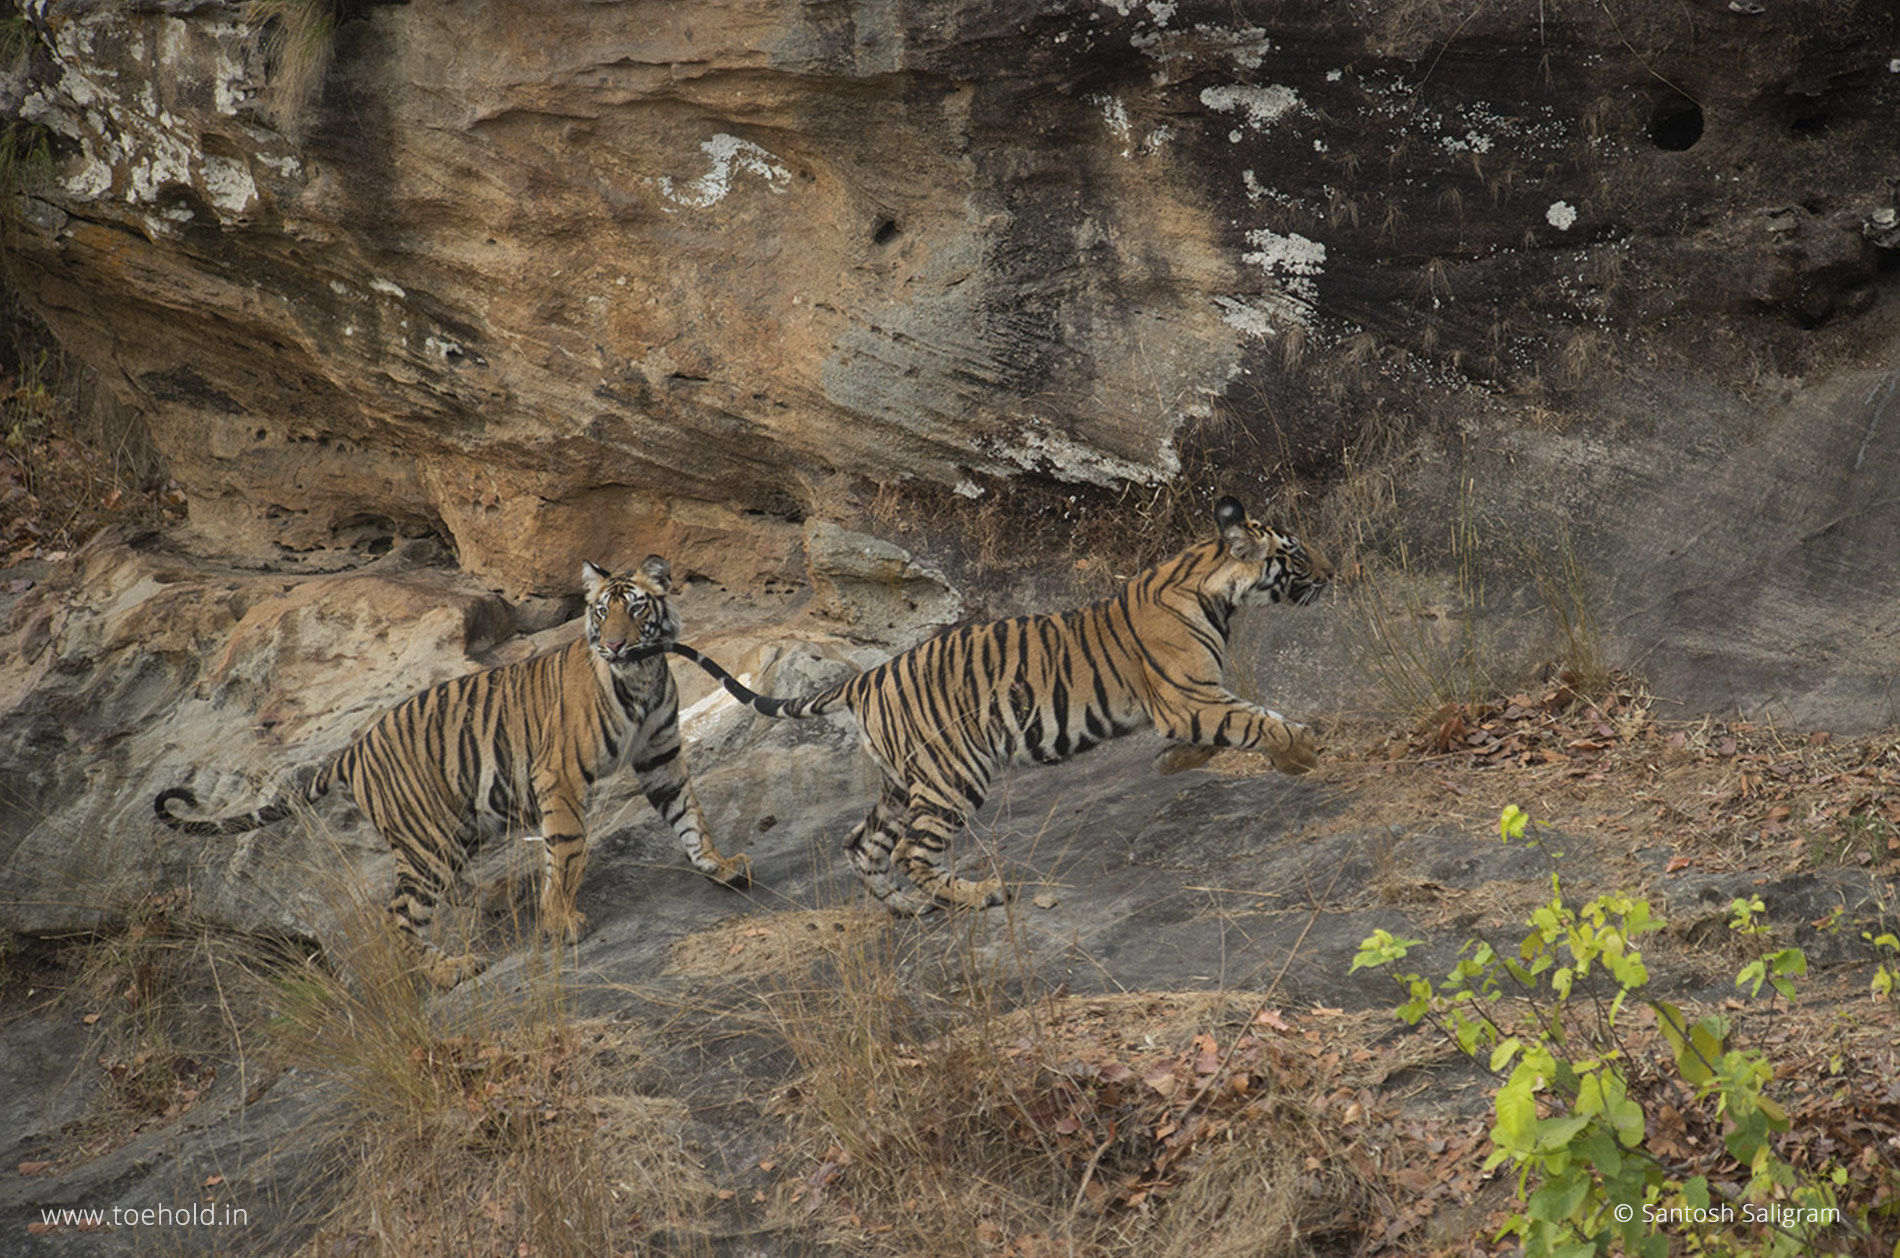 Tiger cubs of the Banbehi Female, Bandhavgarh